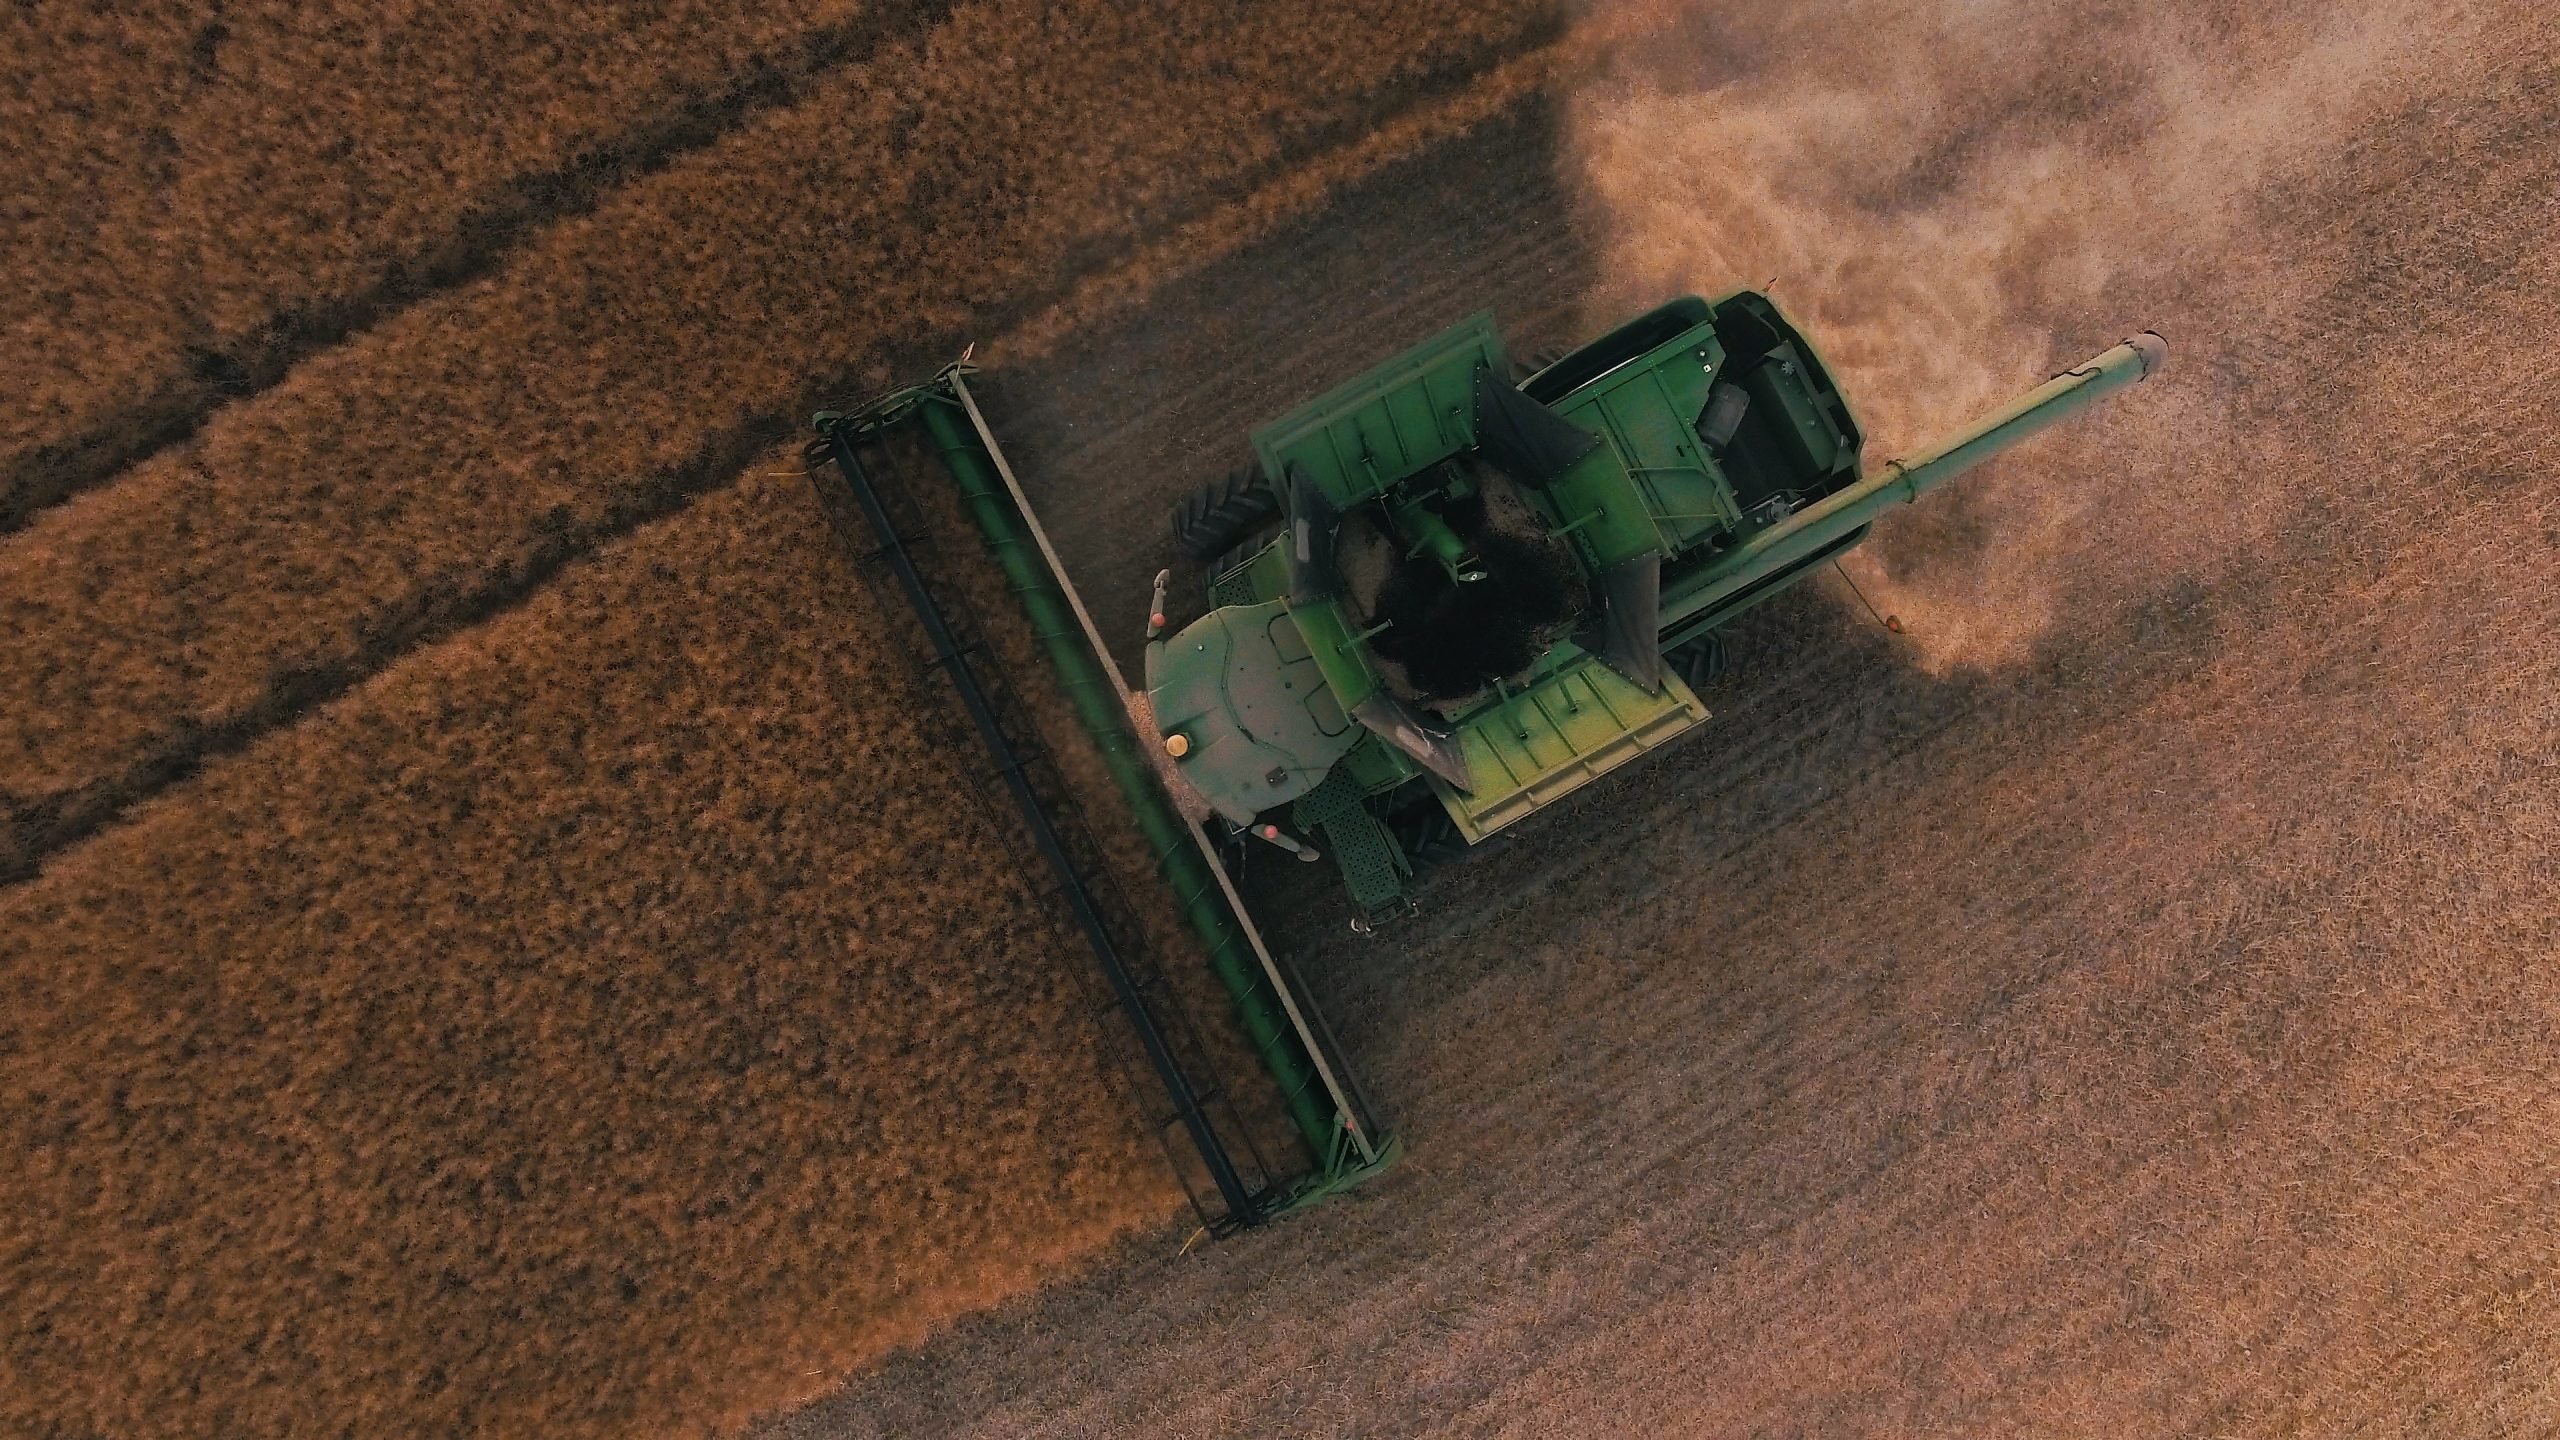 Aerial shot of tractor on a farm clearing crops